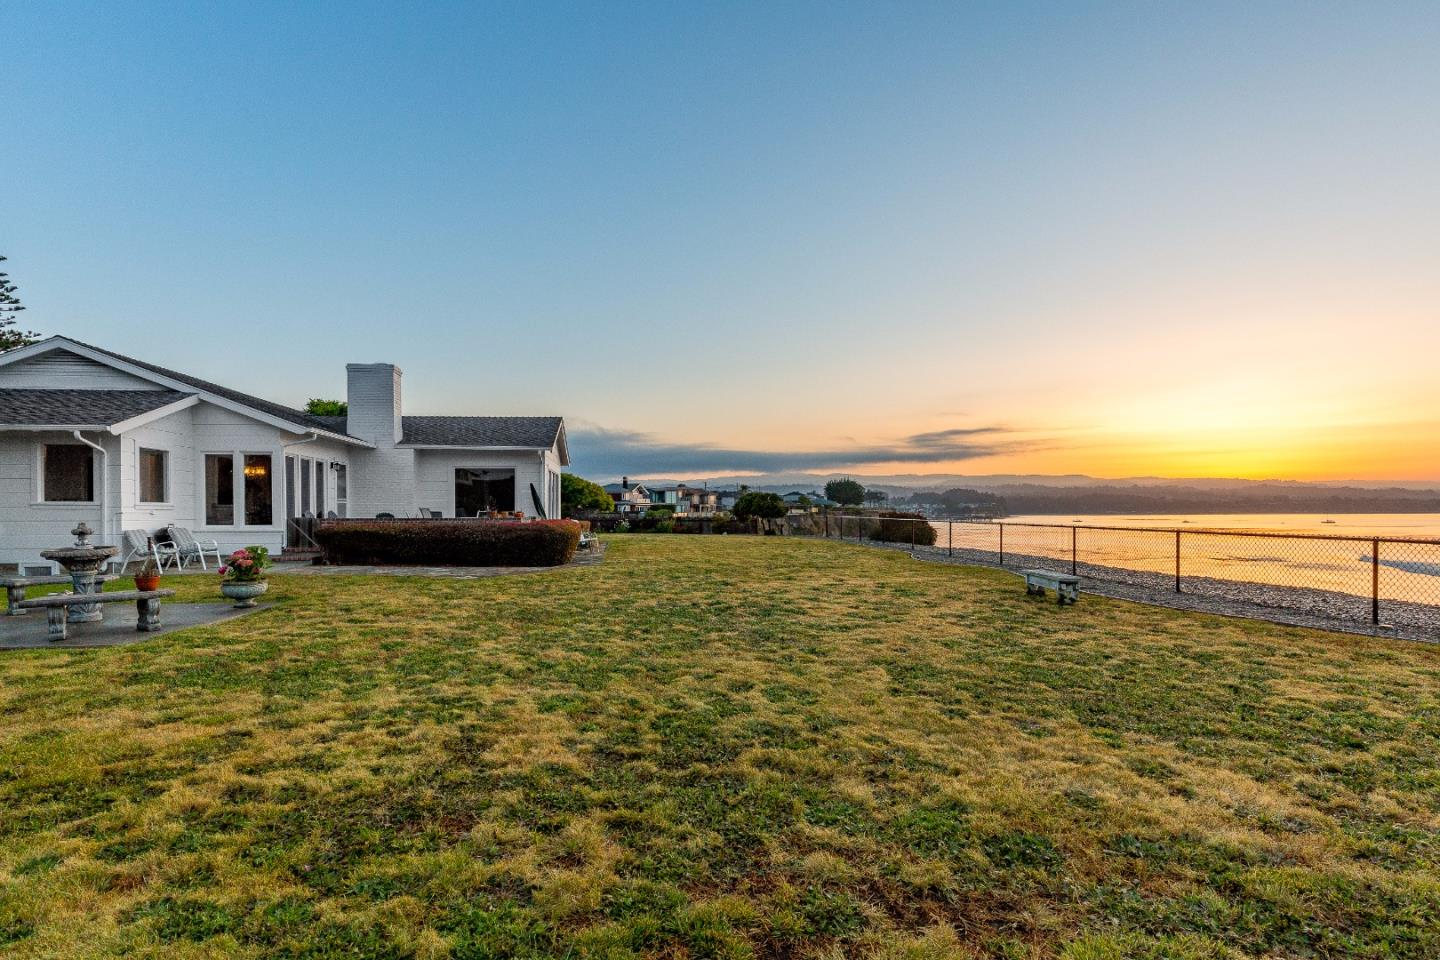 Single Family Home for Sale at 4200 Opal Cliff Drive Santa Cruz, California 95062 United States